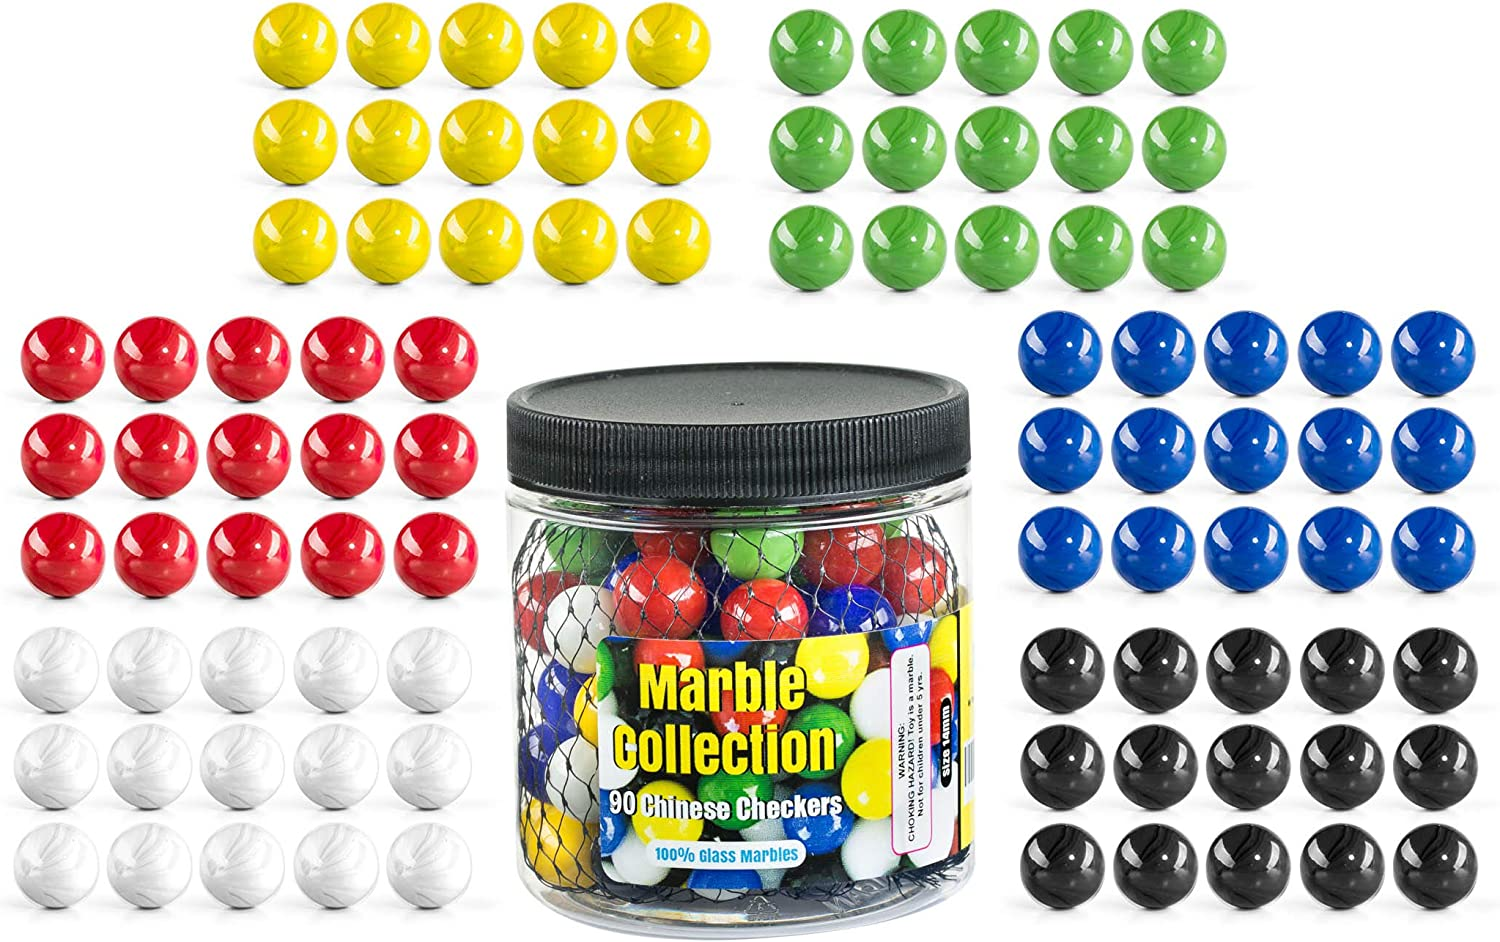 My Toy House Chinese Checkers Glass Marbles. Set of 90, 15 of Each Color. Size 9/16 (14mm), with Practical Container 81x4LGw7GPL